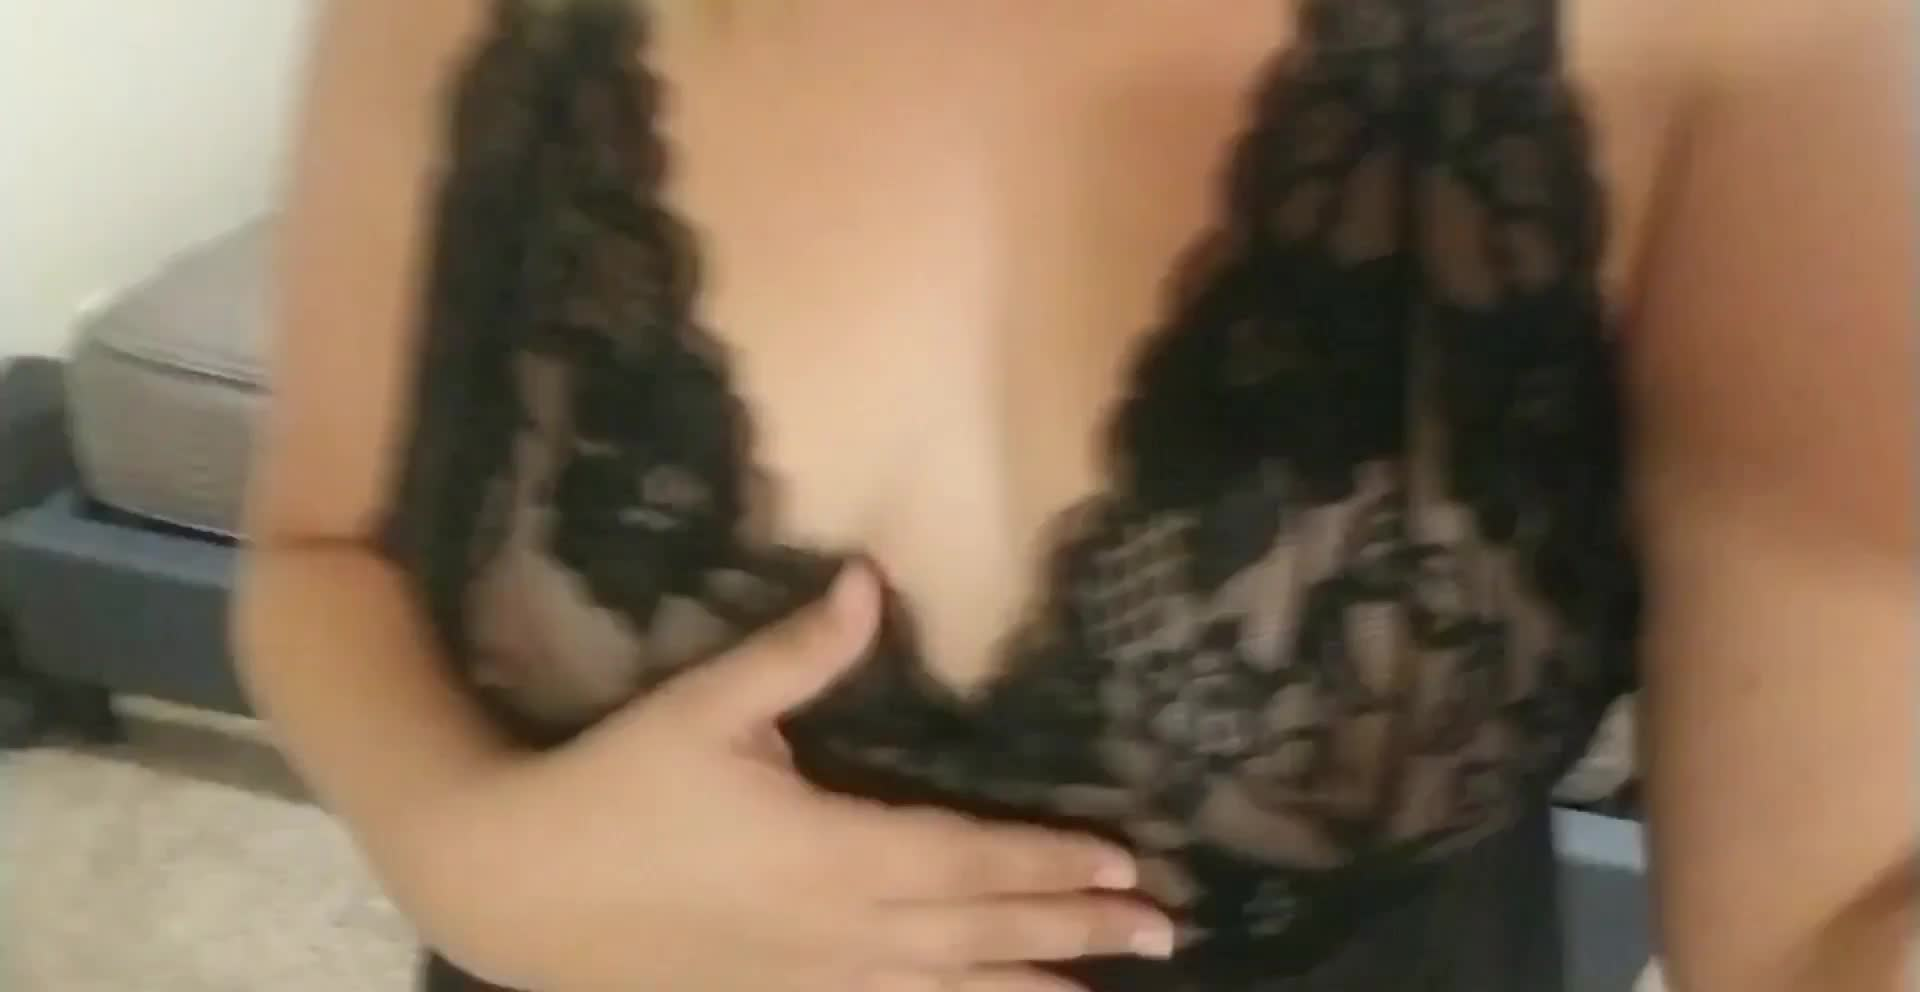 Titty Tuesday!!